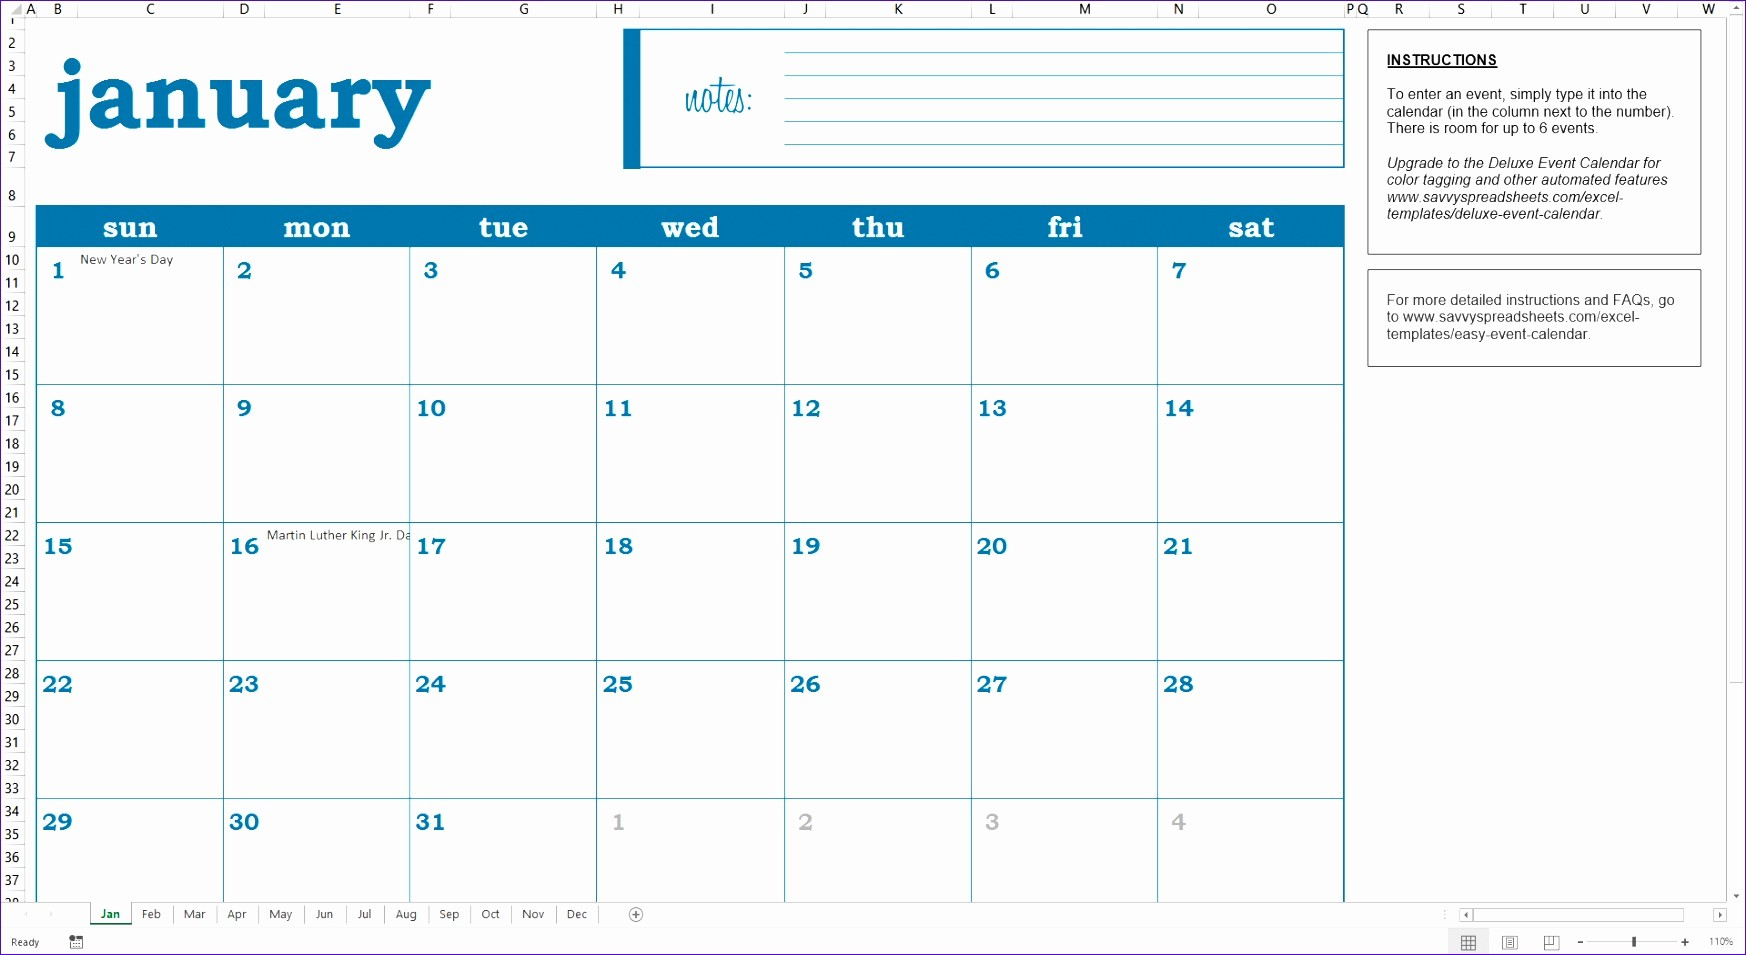 Event Planning Timeline Template Excel Awesome 8 Free event Planning Checklist Template Excel